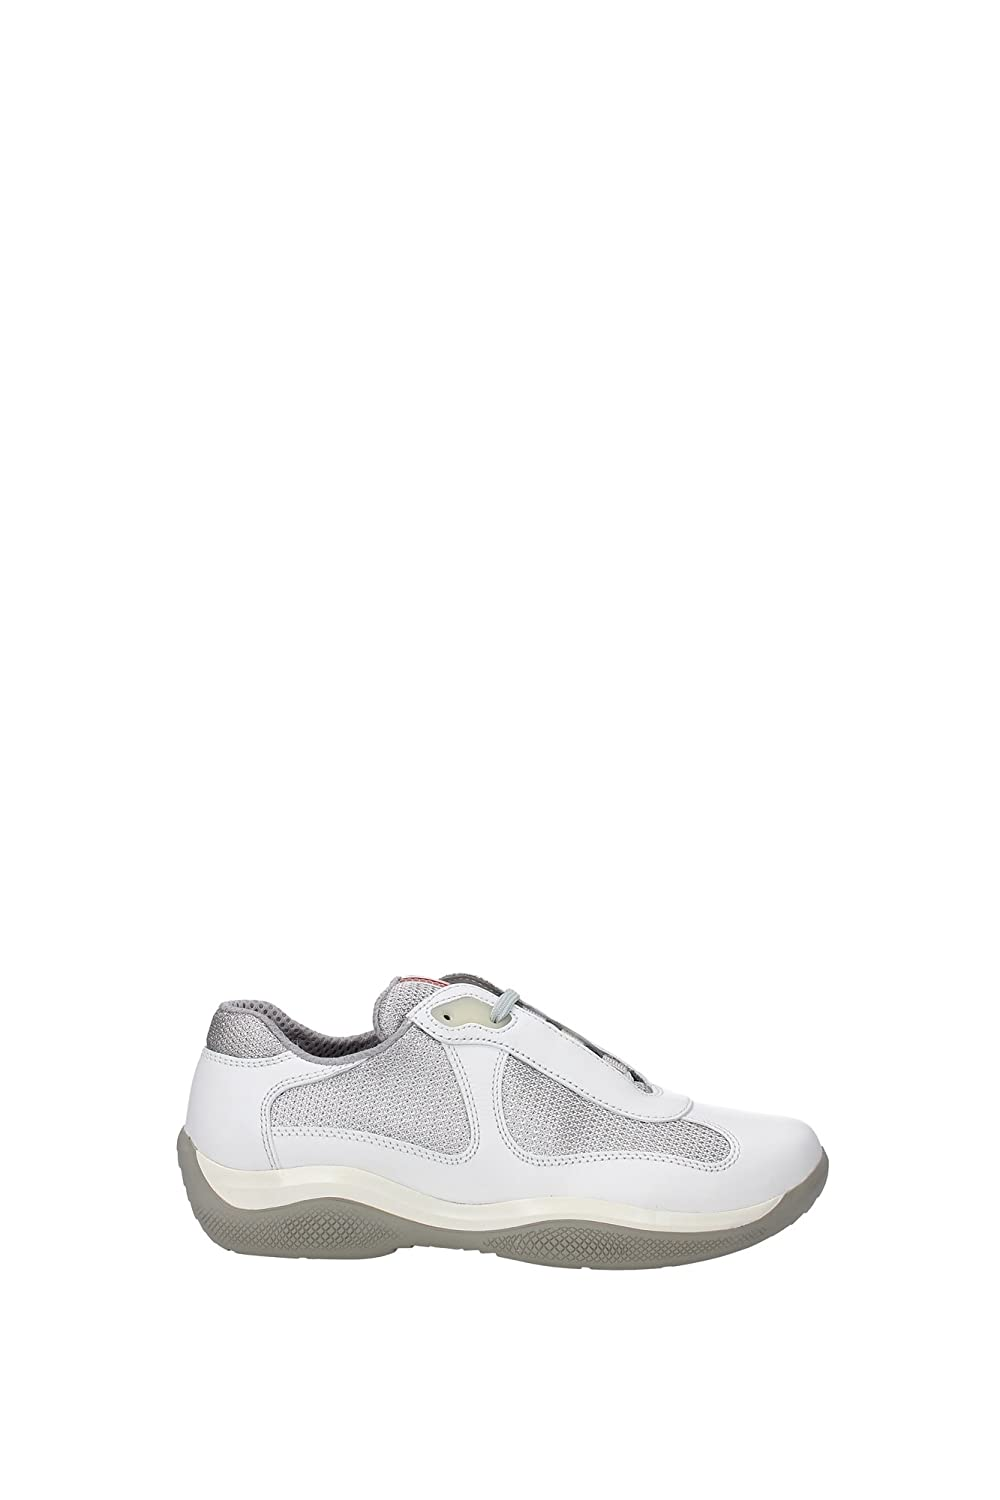 f62abe3f297e Sneakers Prada Women Leather Talc and Silver PR3163TALCO White 4UK   Amazon.co.uk  Shoes   Bags